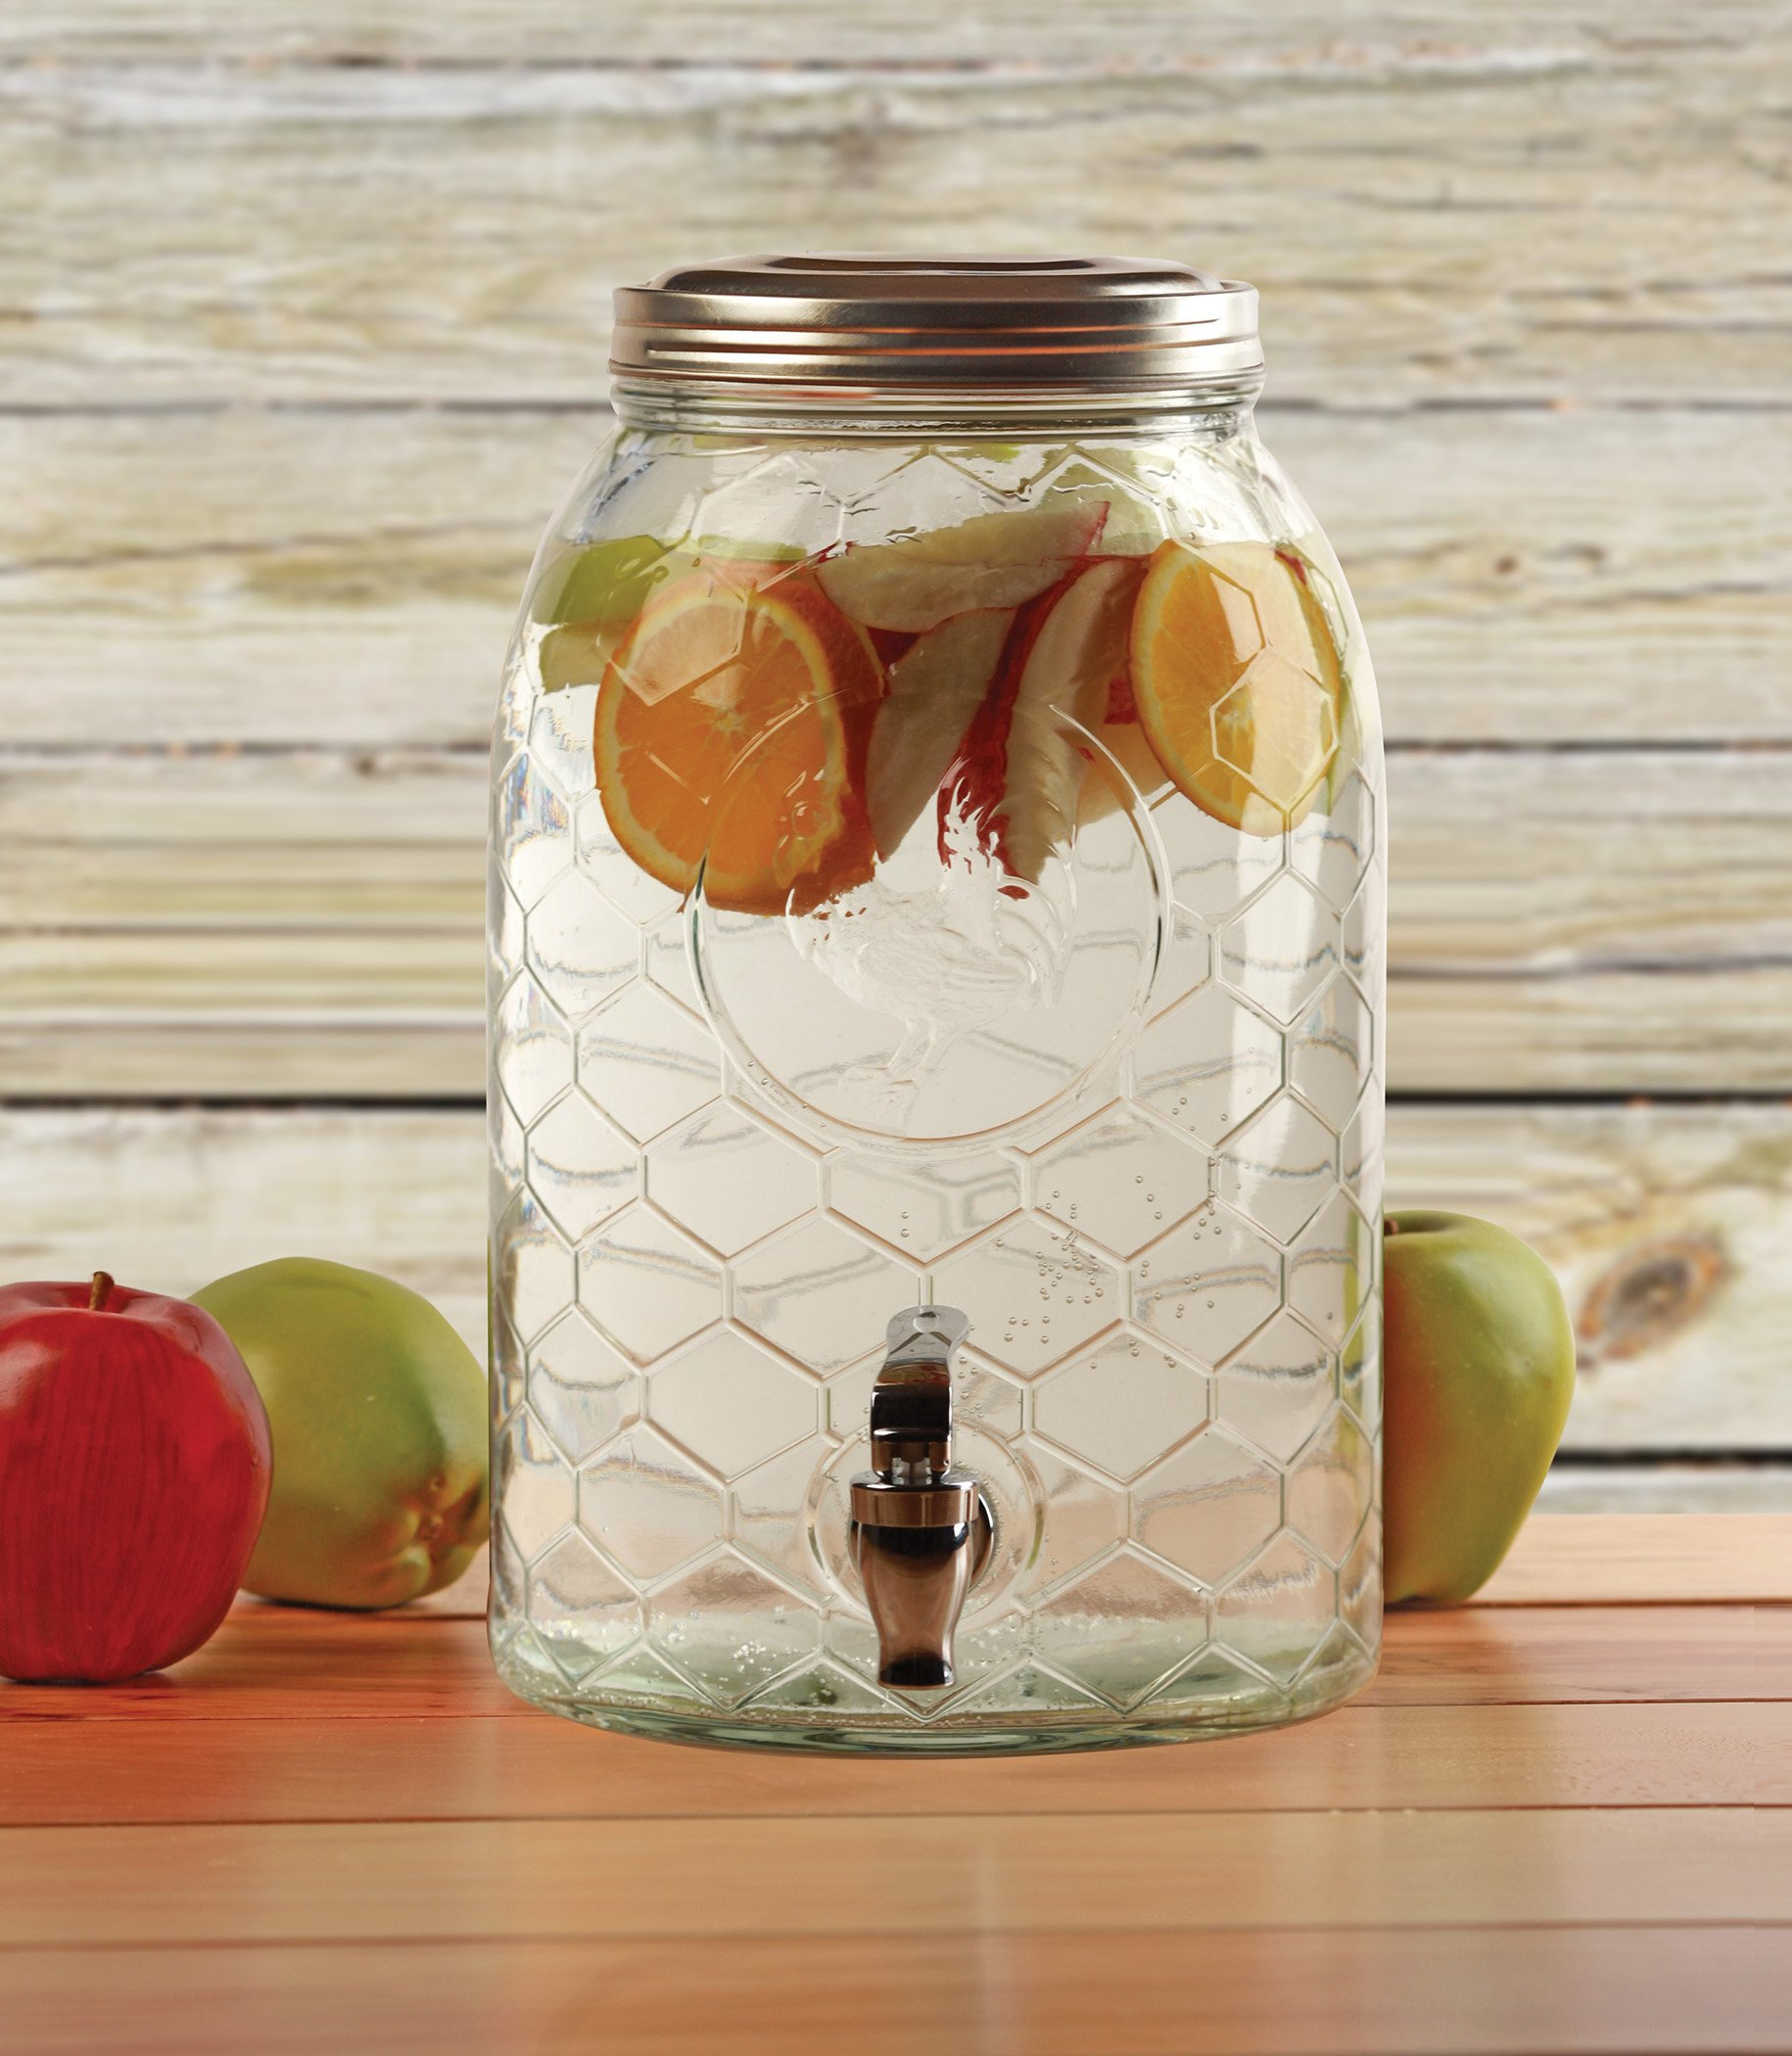 Circleware 69142 Rooster Glass Beverage Dispenser with Metal Fence Stand and Lid Sun Tea Jar with Spigot Entertainment Kitchen Glassware Drink Water Pitcher for Kombucha Juice, 1.5 Gal by Circleware (Image #5)